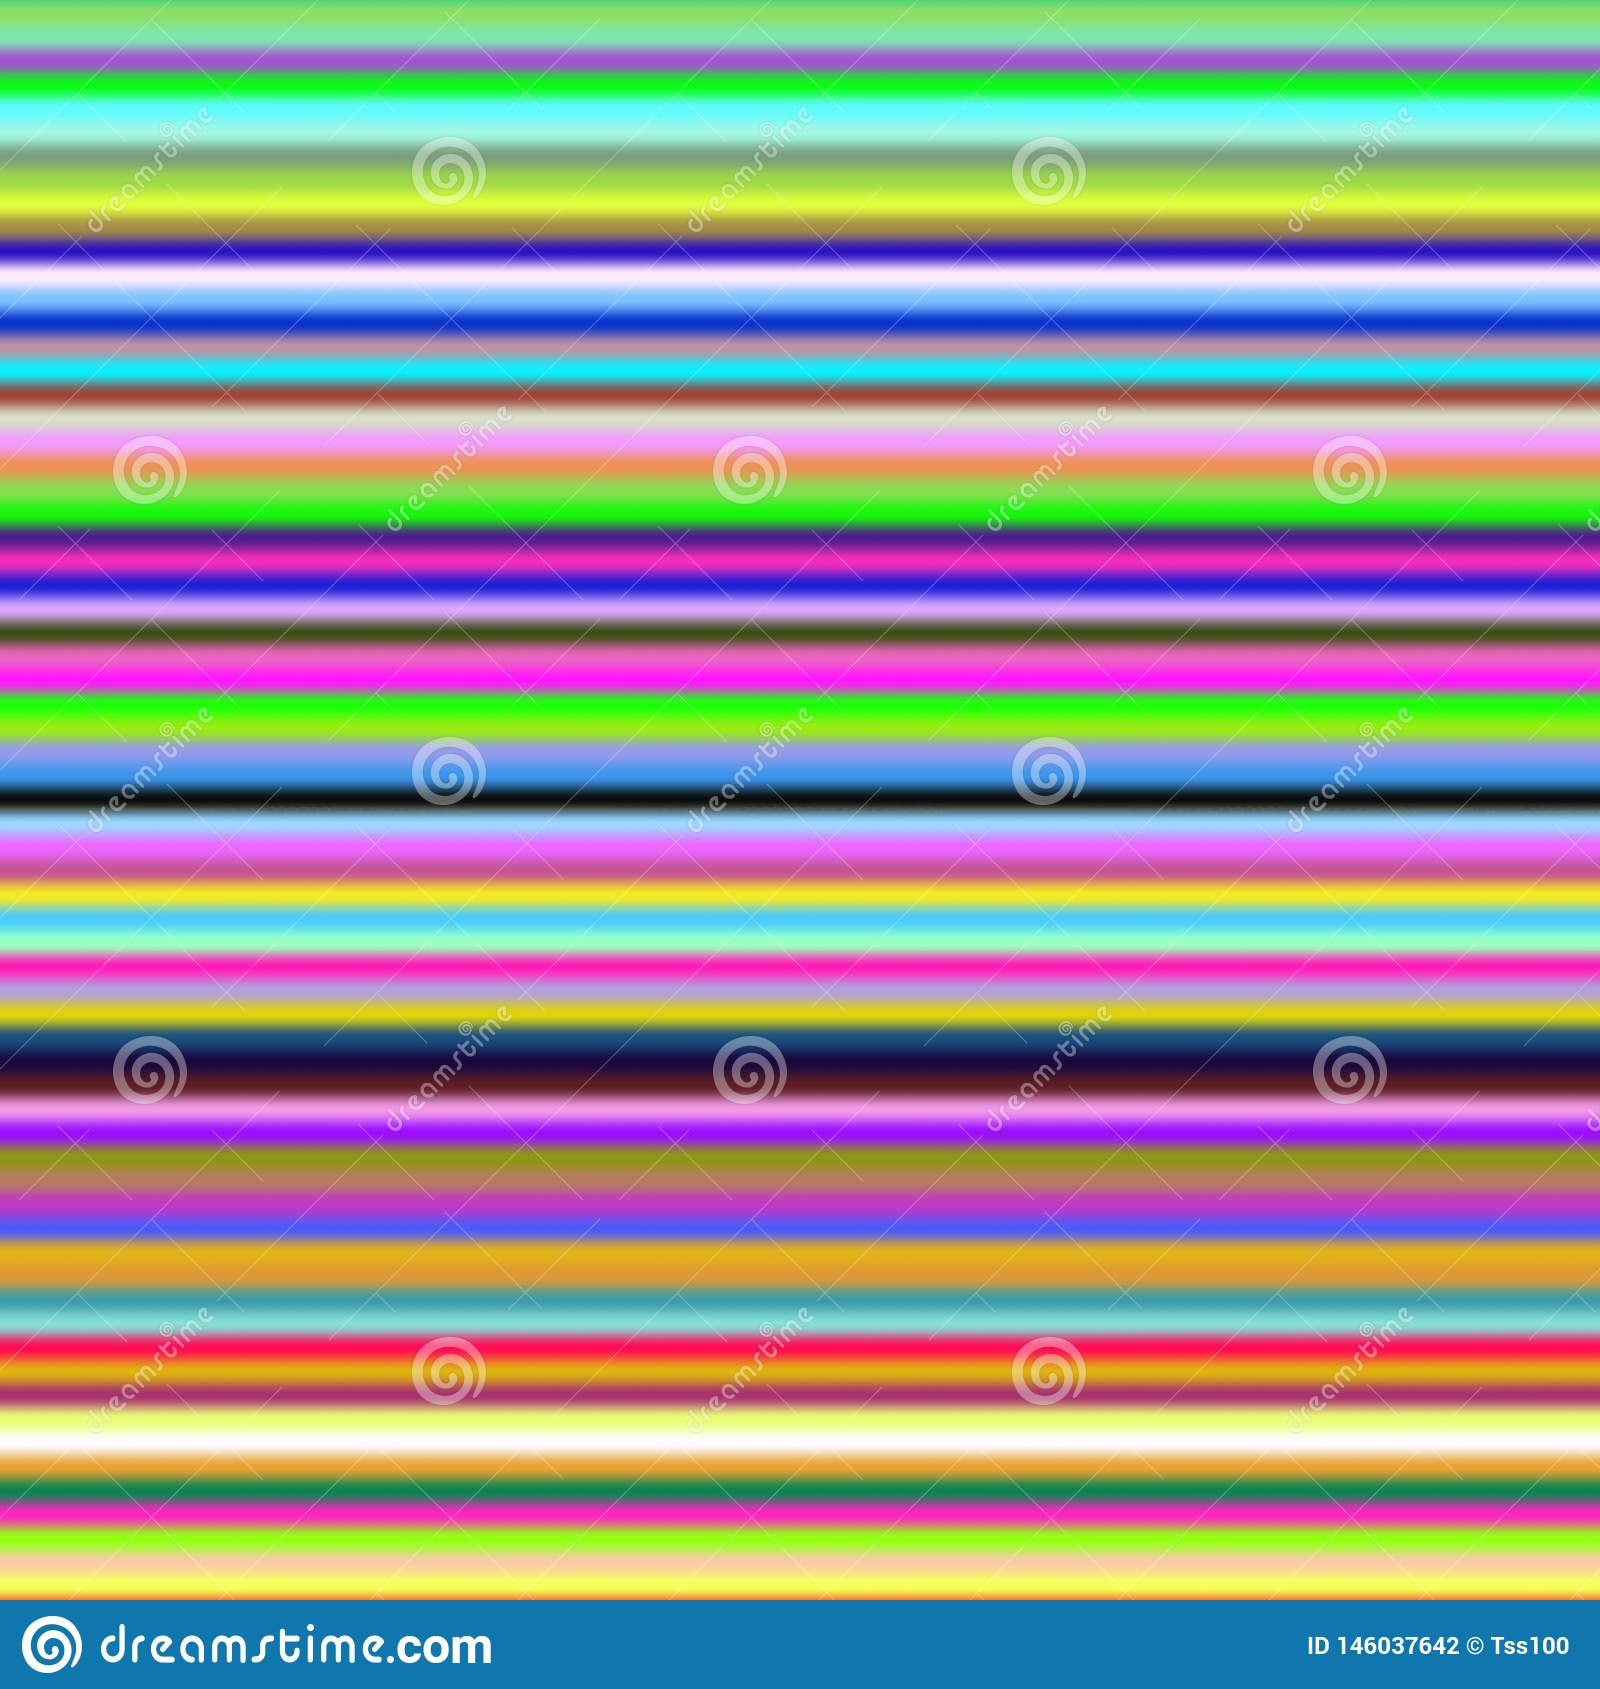 Multicolor horizontal stripes, abstract gradient background